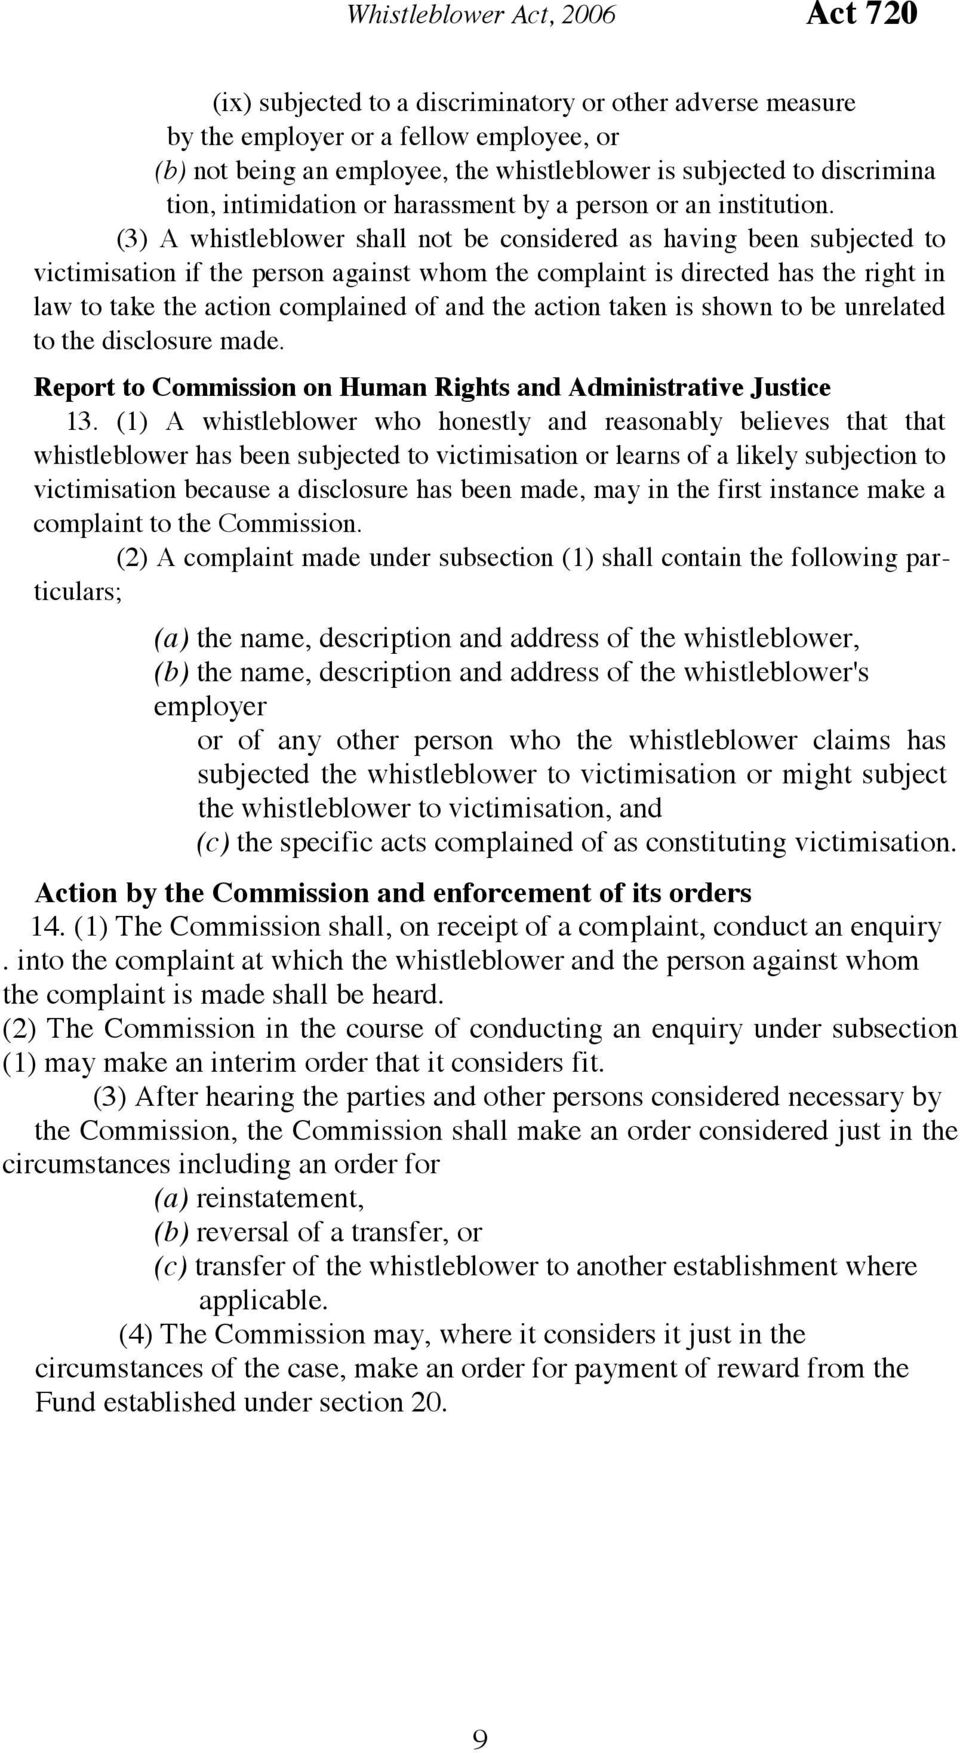 (3) A whistleblower shall not be considered as having been subjected to victimisation if the person against whom the complaint is directed has the right in law to take the action complained of and